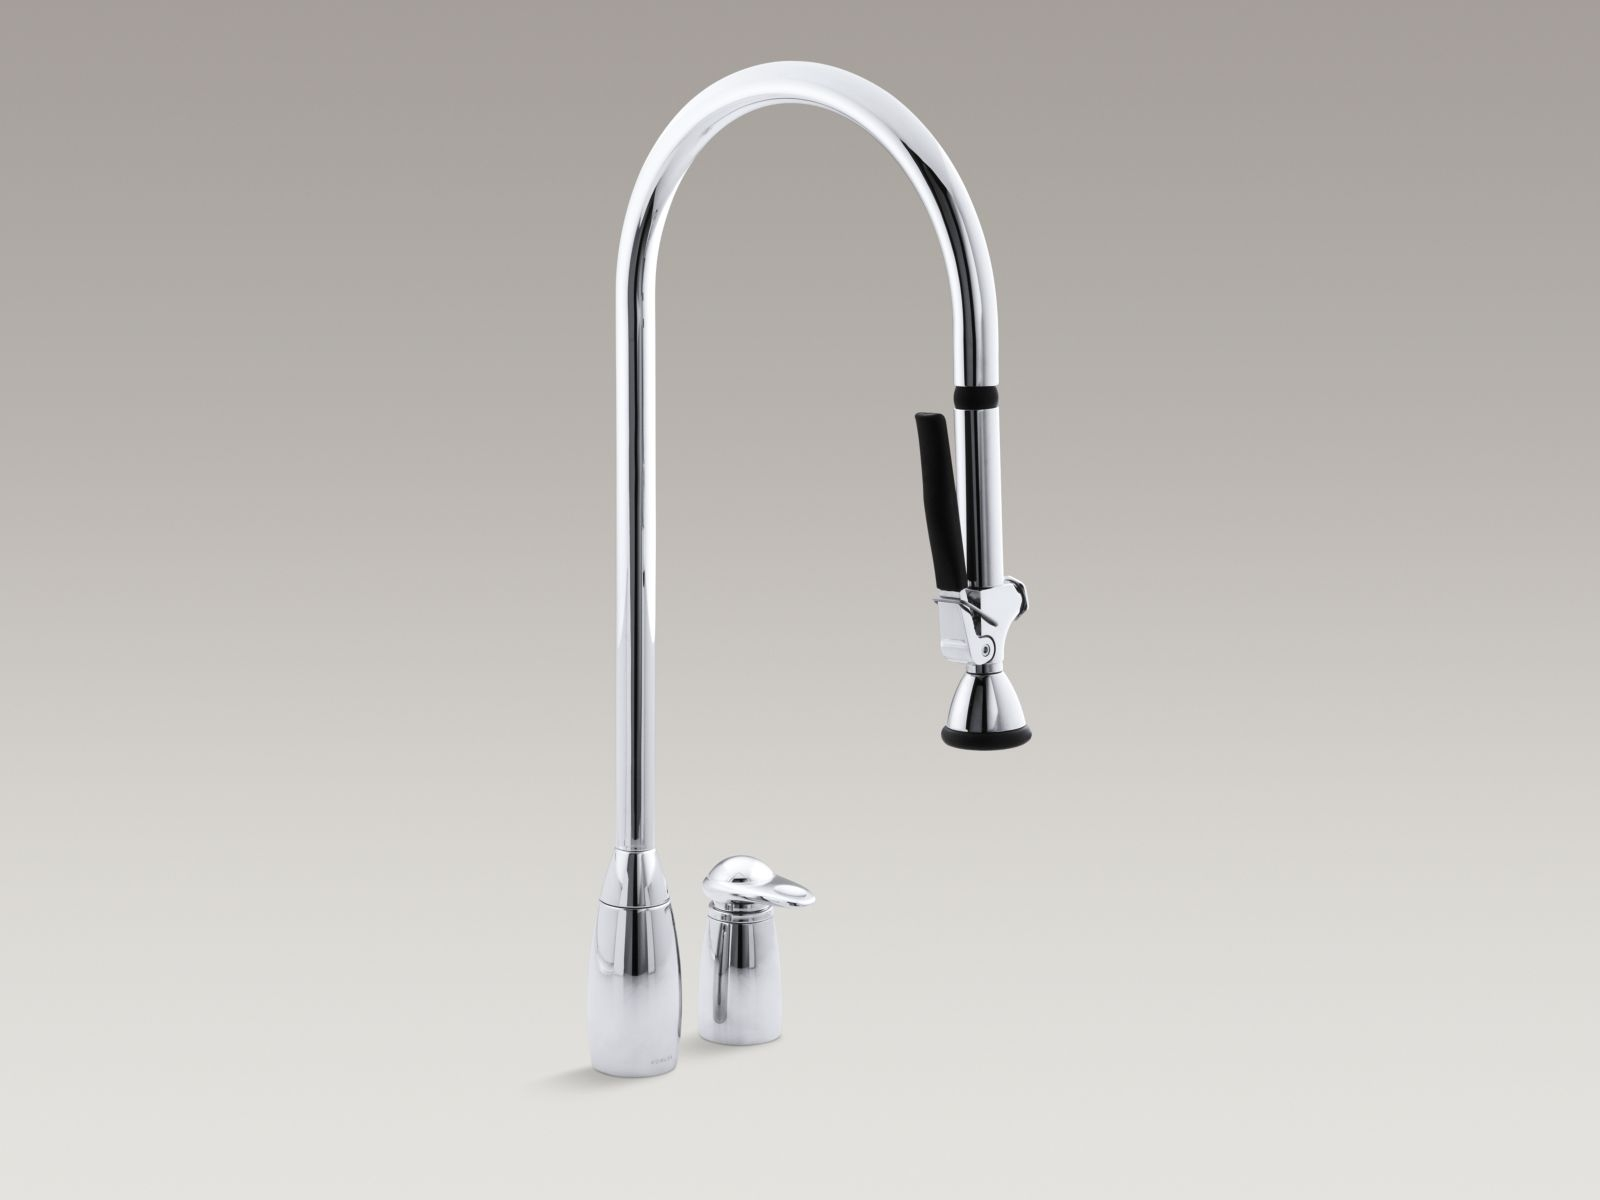 Ideas, kohler fairfax pullout spray kitchen faucet kohler fairfax pullout spray kitchen faucet buyplumbing category pull out spout 1600 x 1200 2  .